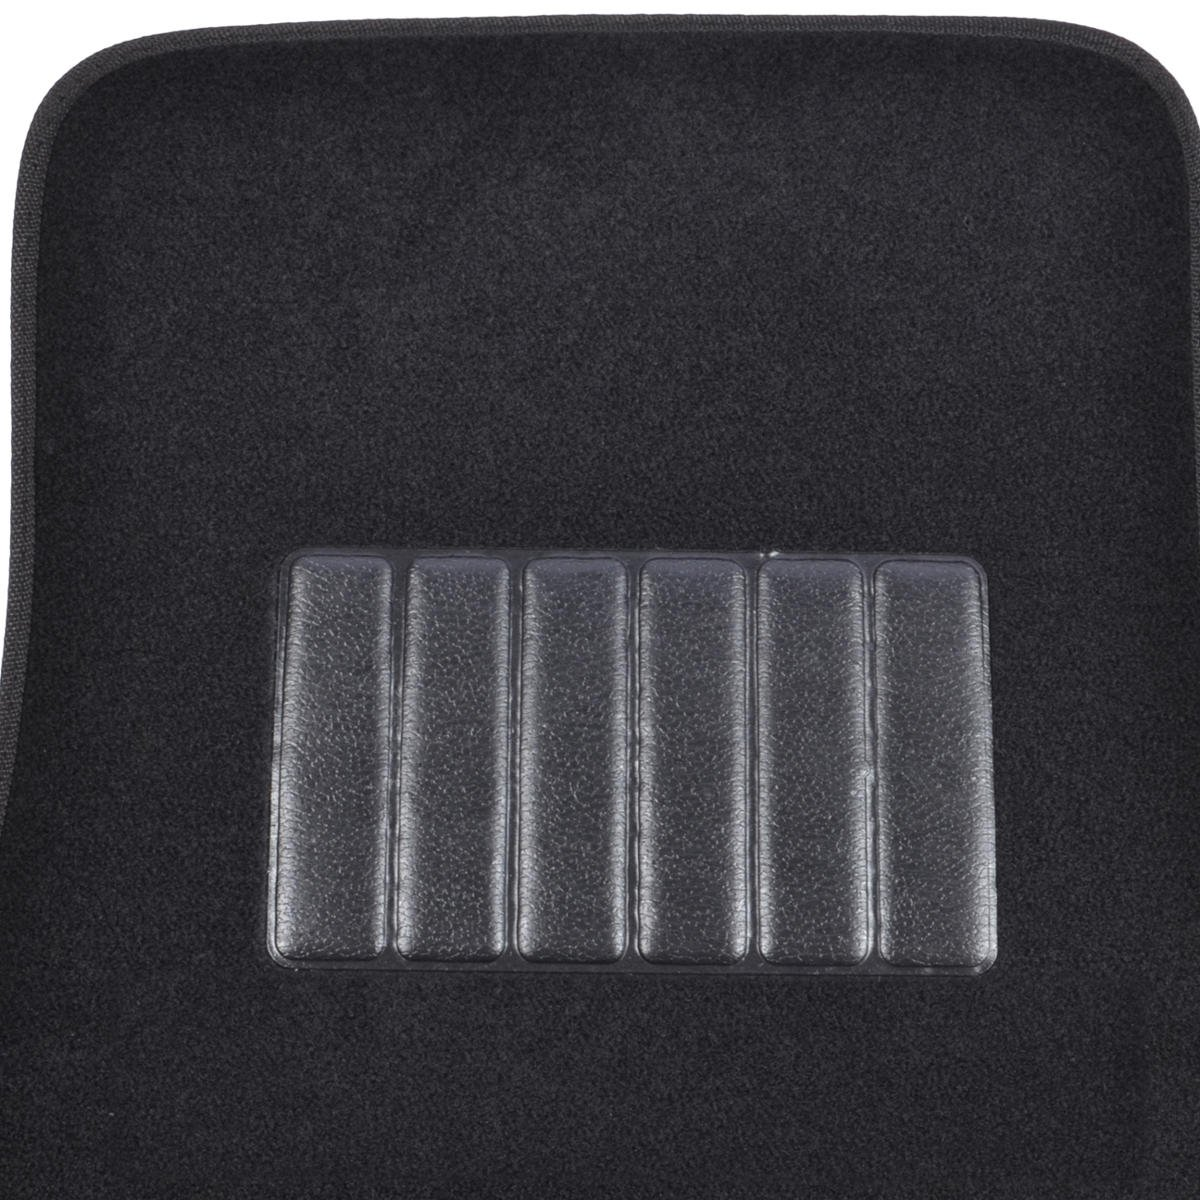 2007 Volvo XC70 Pink Driver 2004 2005 GGBAILEY D4339A-S1A-PNK Custom Fit Car Mats for 2003 2006 Passenger /& Rear Floor